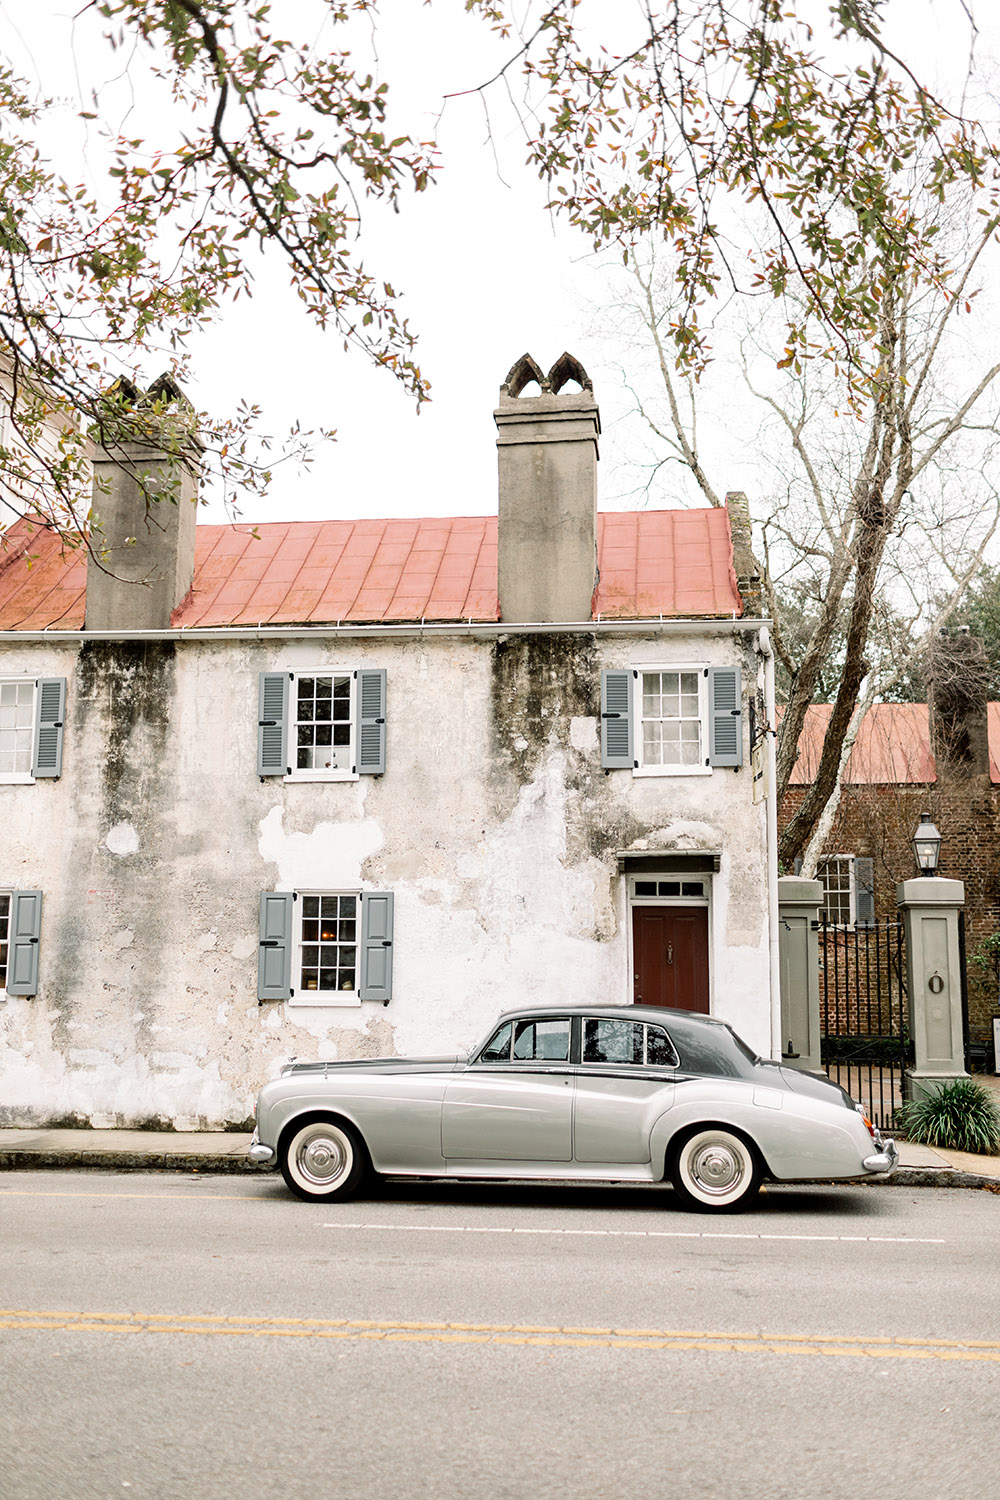 SC Express' dove grey vintage 'Silver Cloud' car is the perfect getaway vehicle for the modern couple with nostalgic sensibilities.